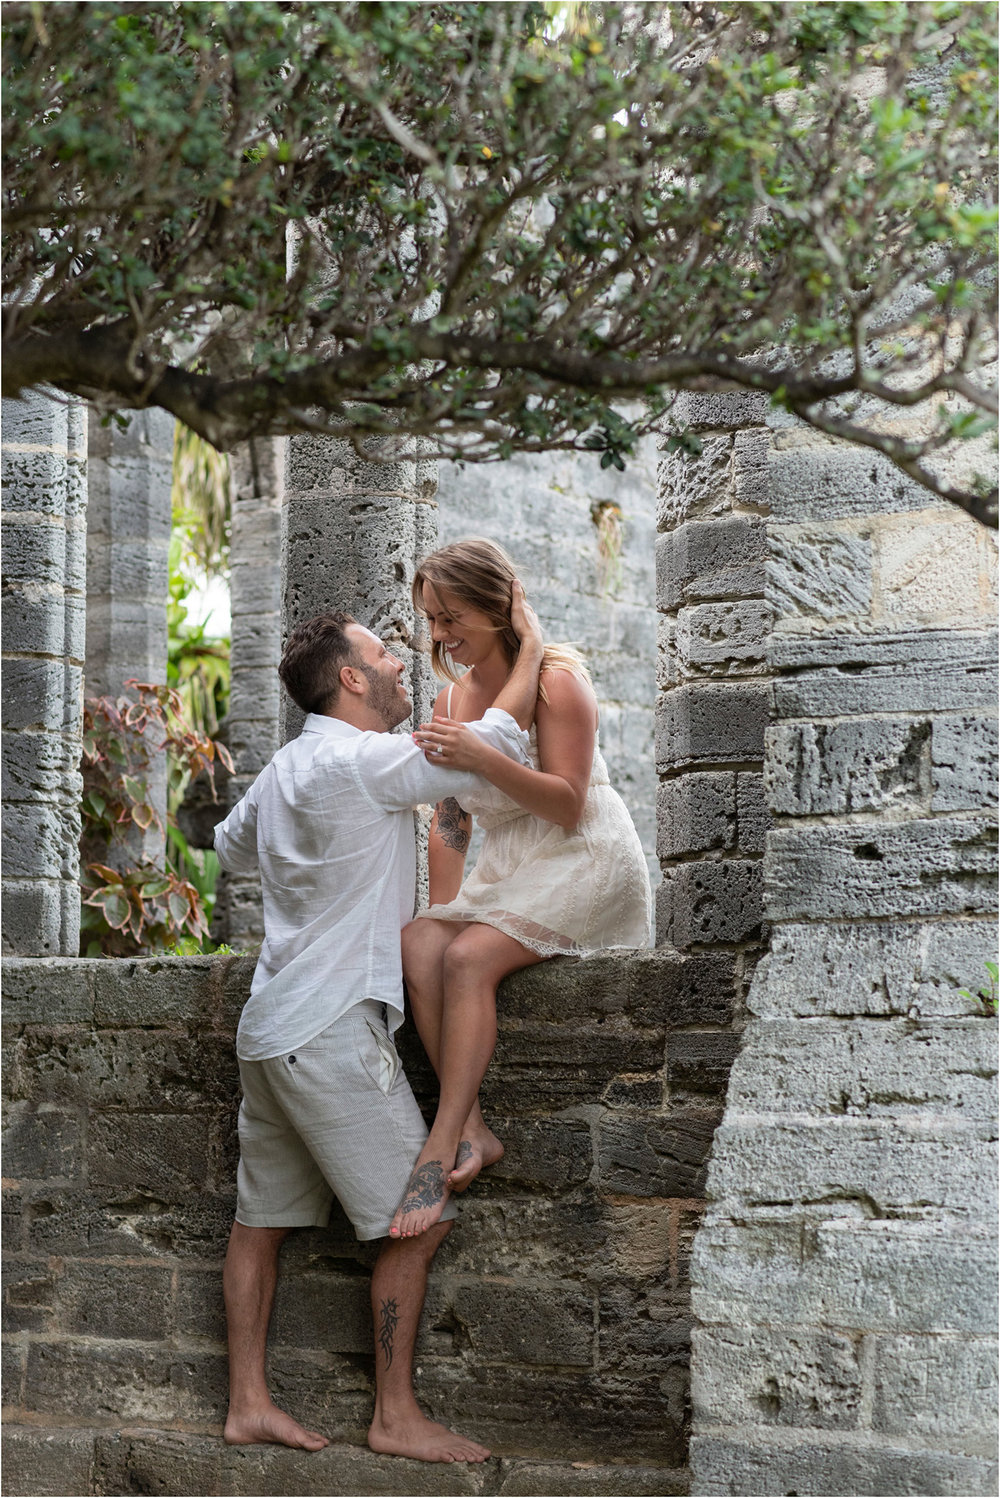 ©FianderFoto_Bermuda Engagement Photographer_St Georges_Danielle_David_013.jpg